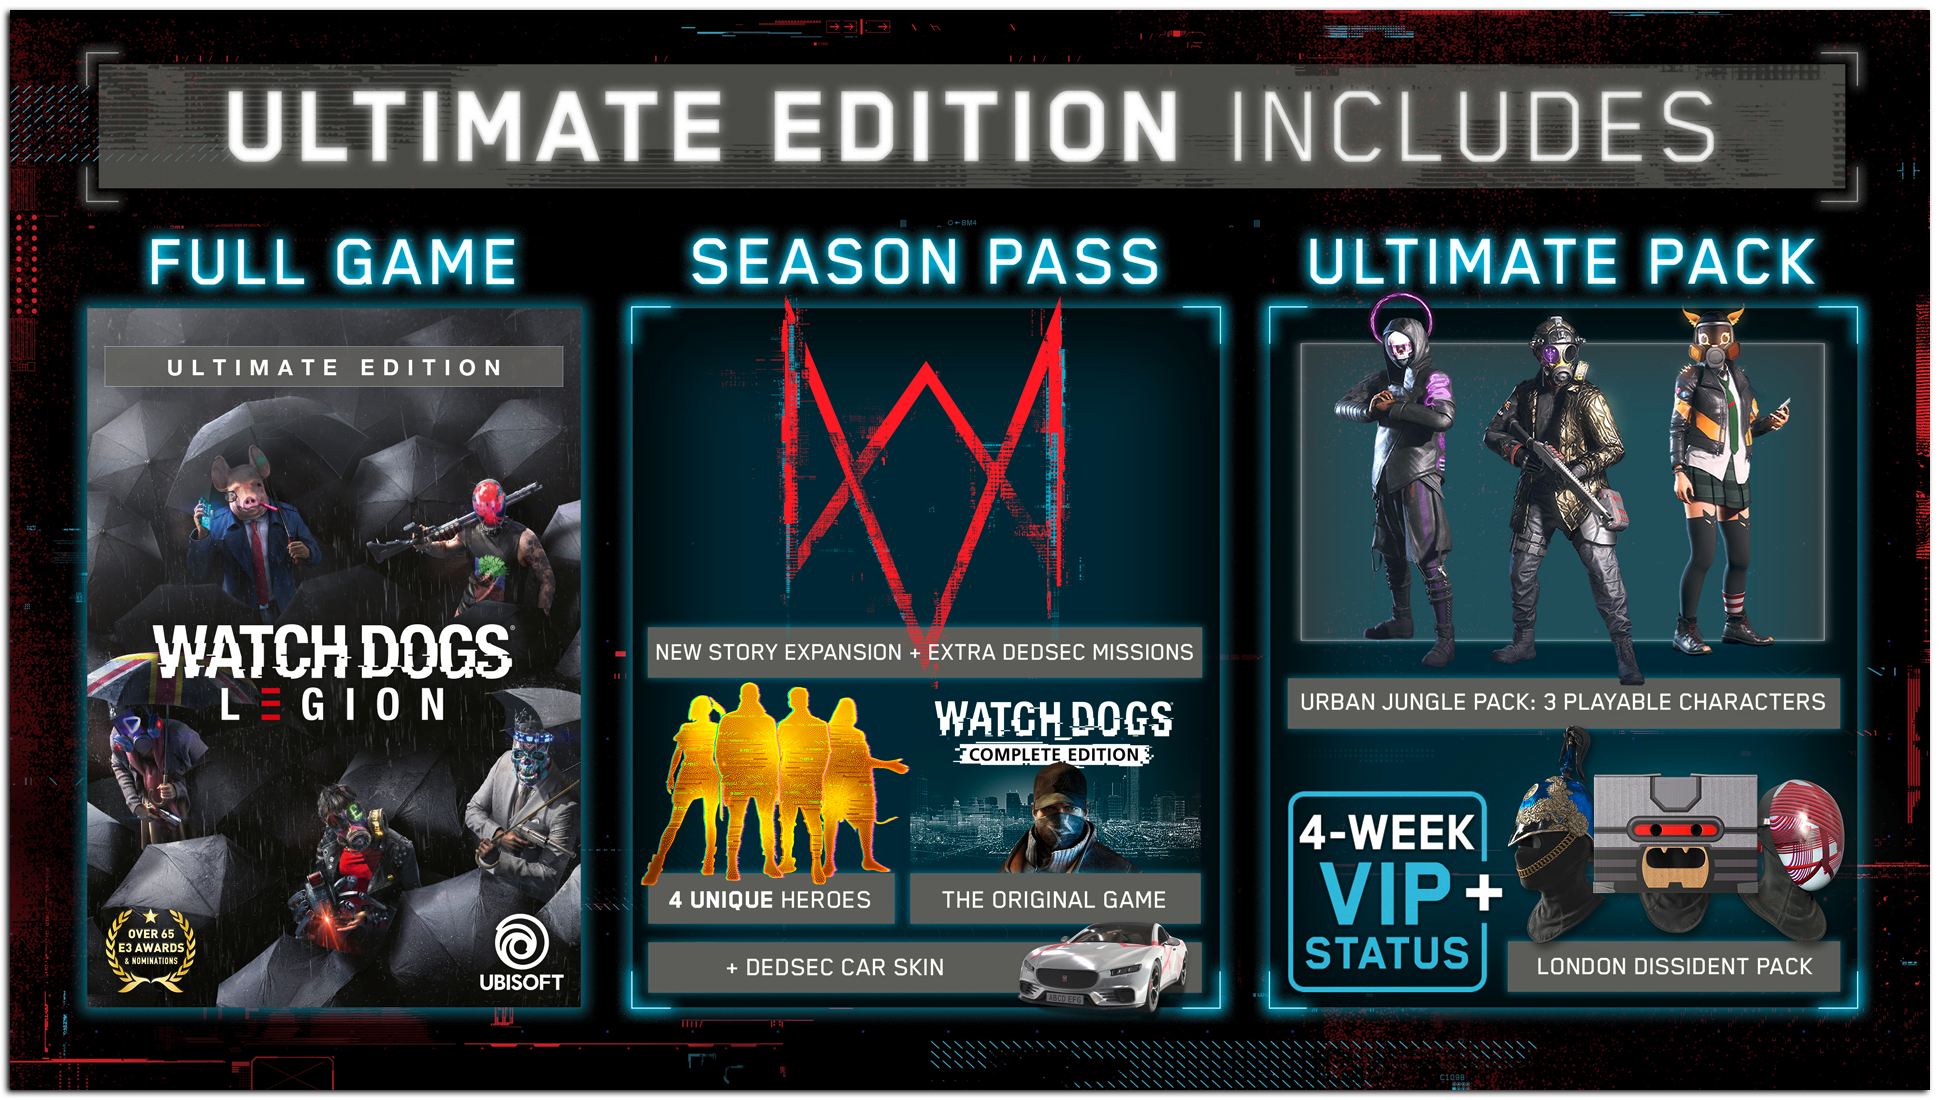 Content of Watch Dogs: Legion editions -